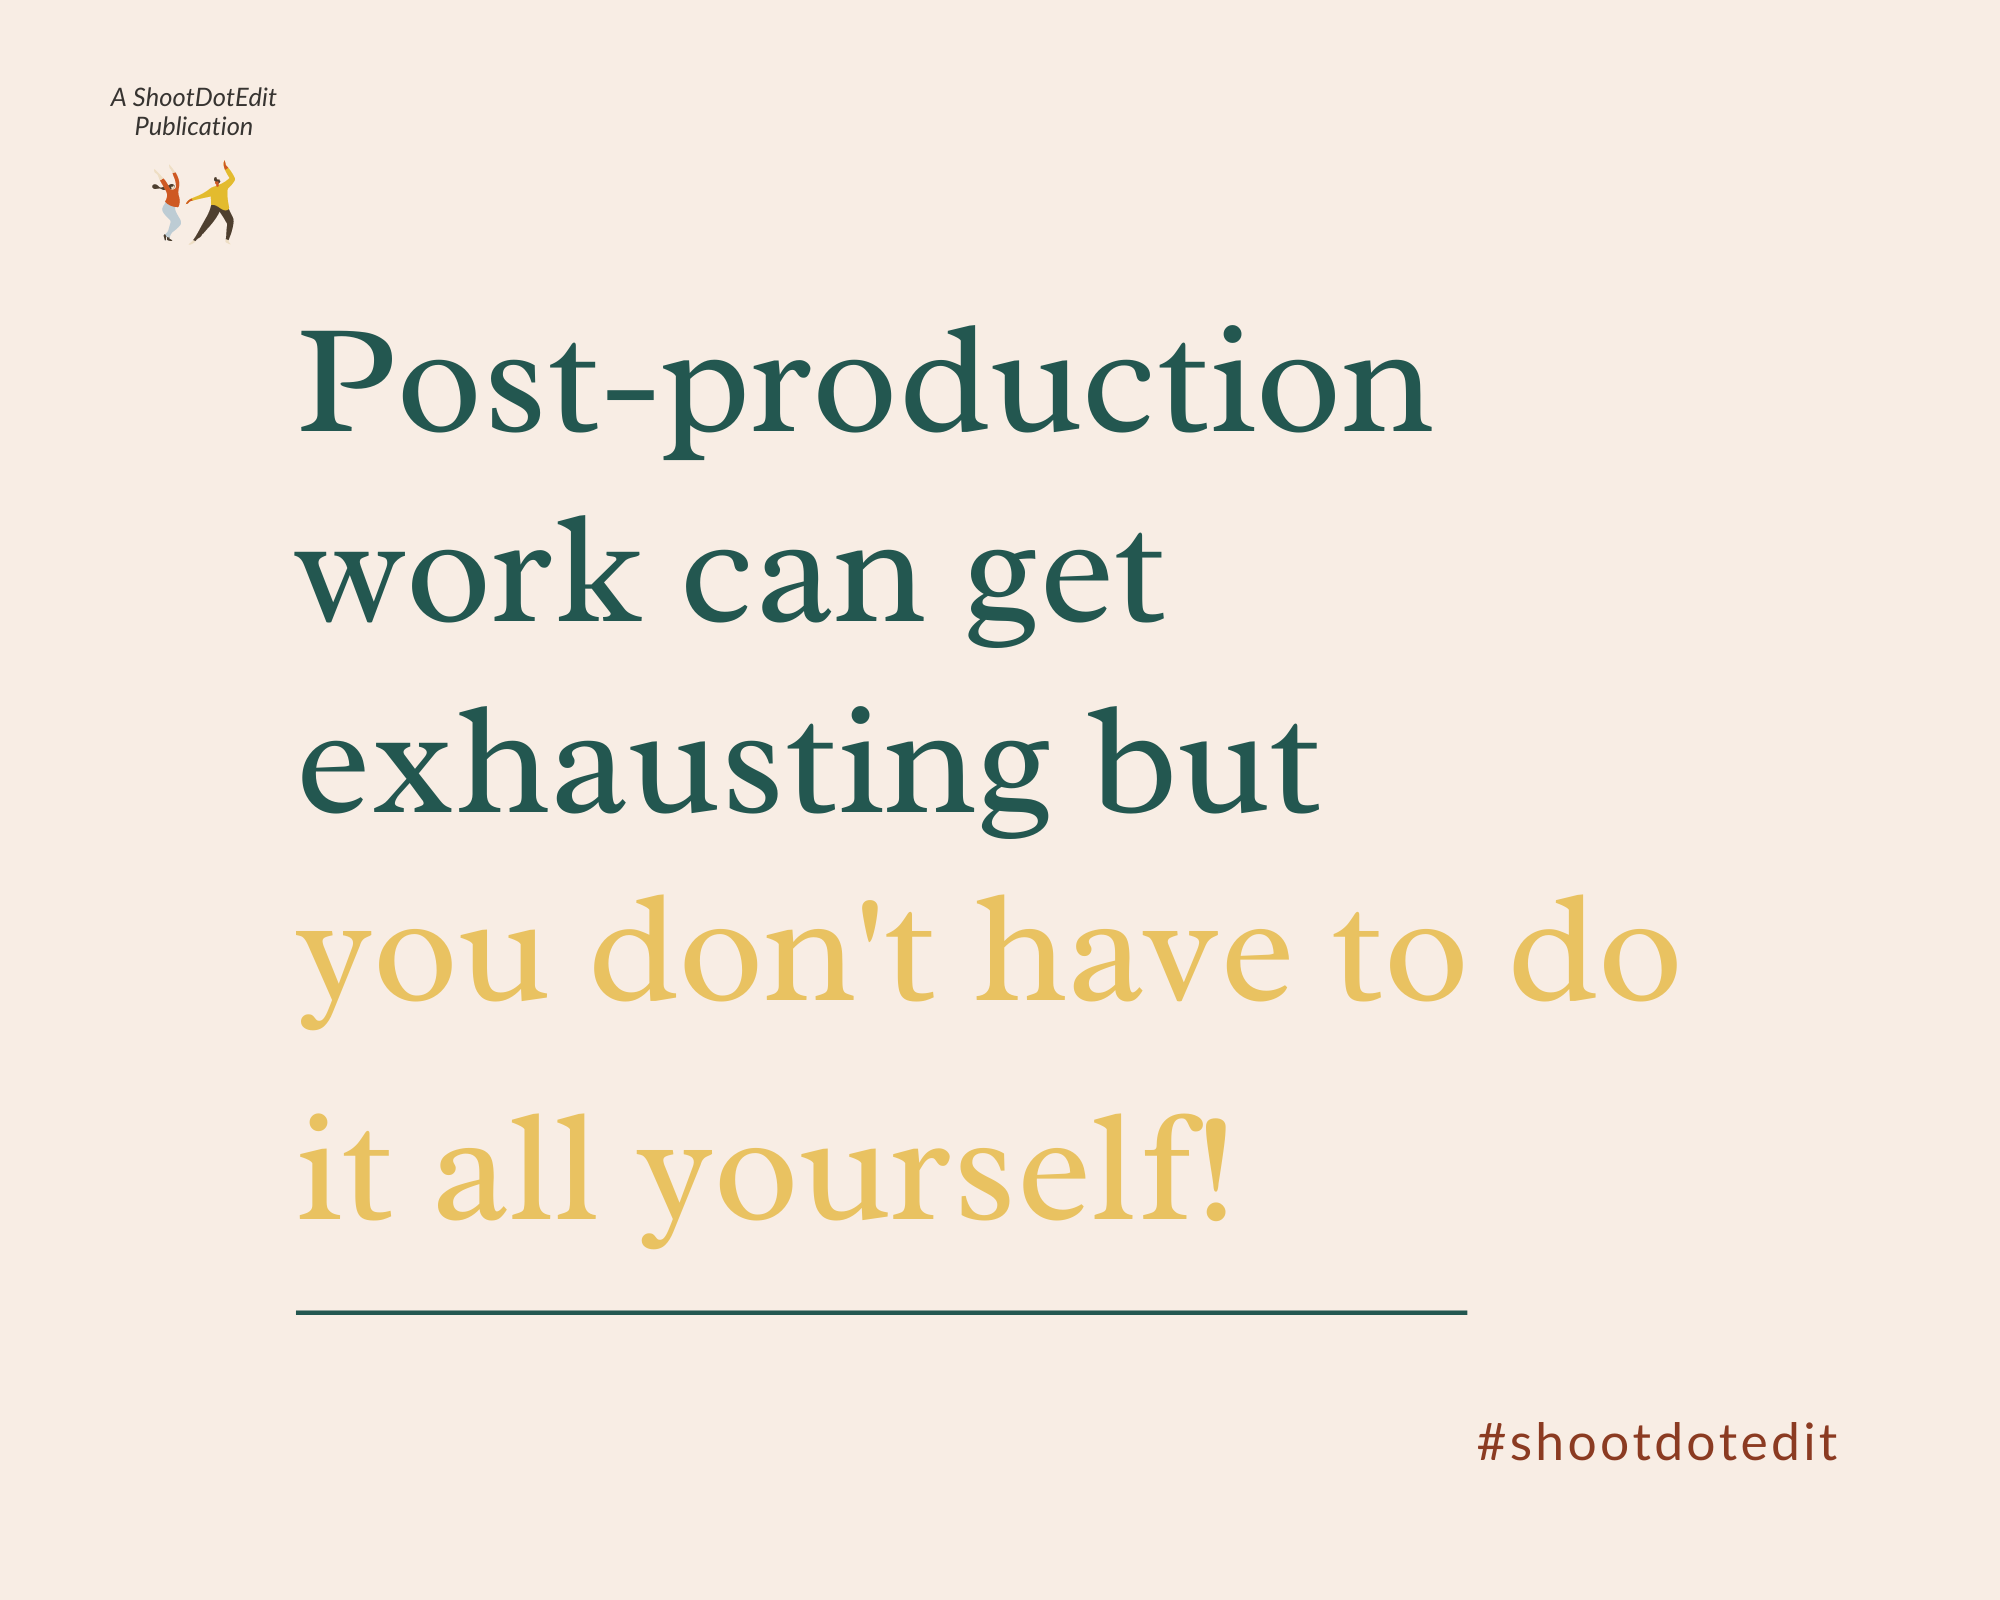 Infographic stating post production work can get exhausting but you don't have to do it all yourself